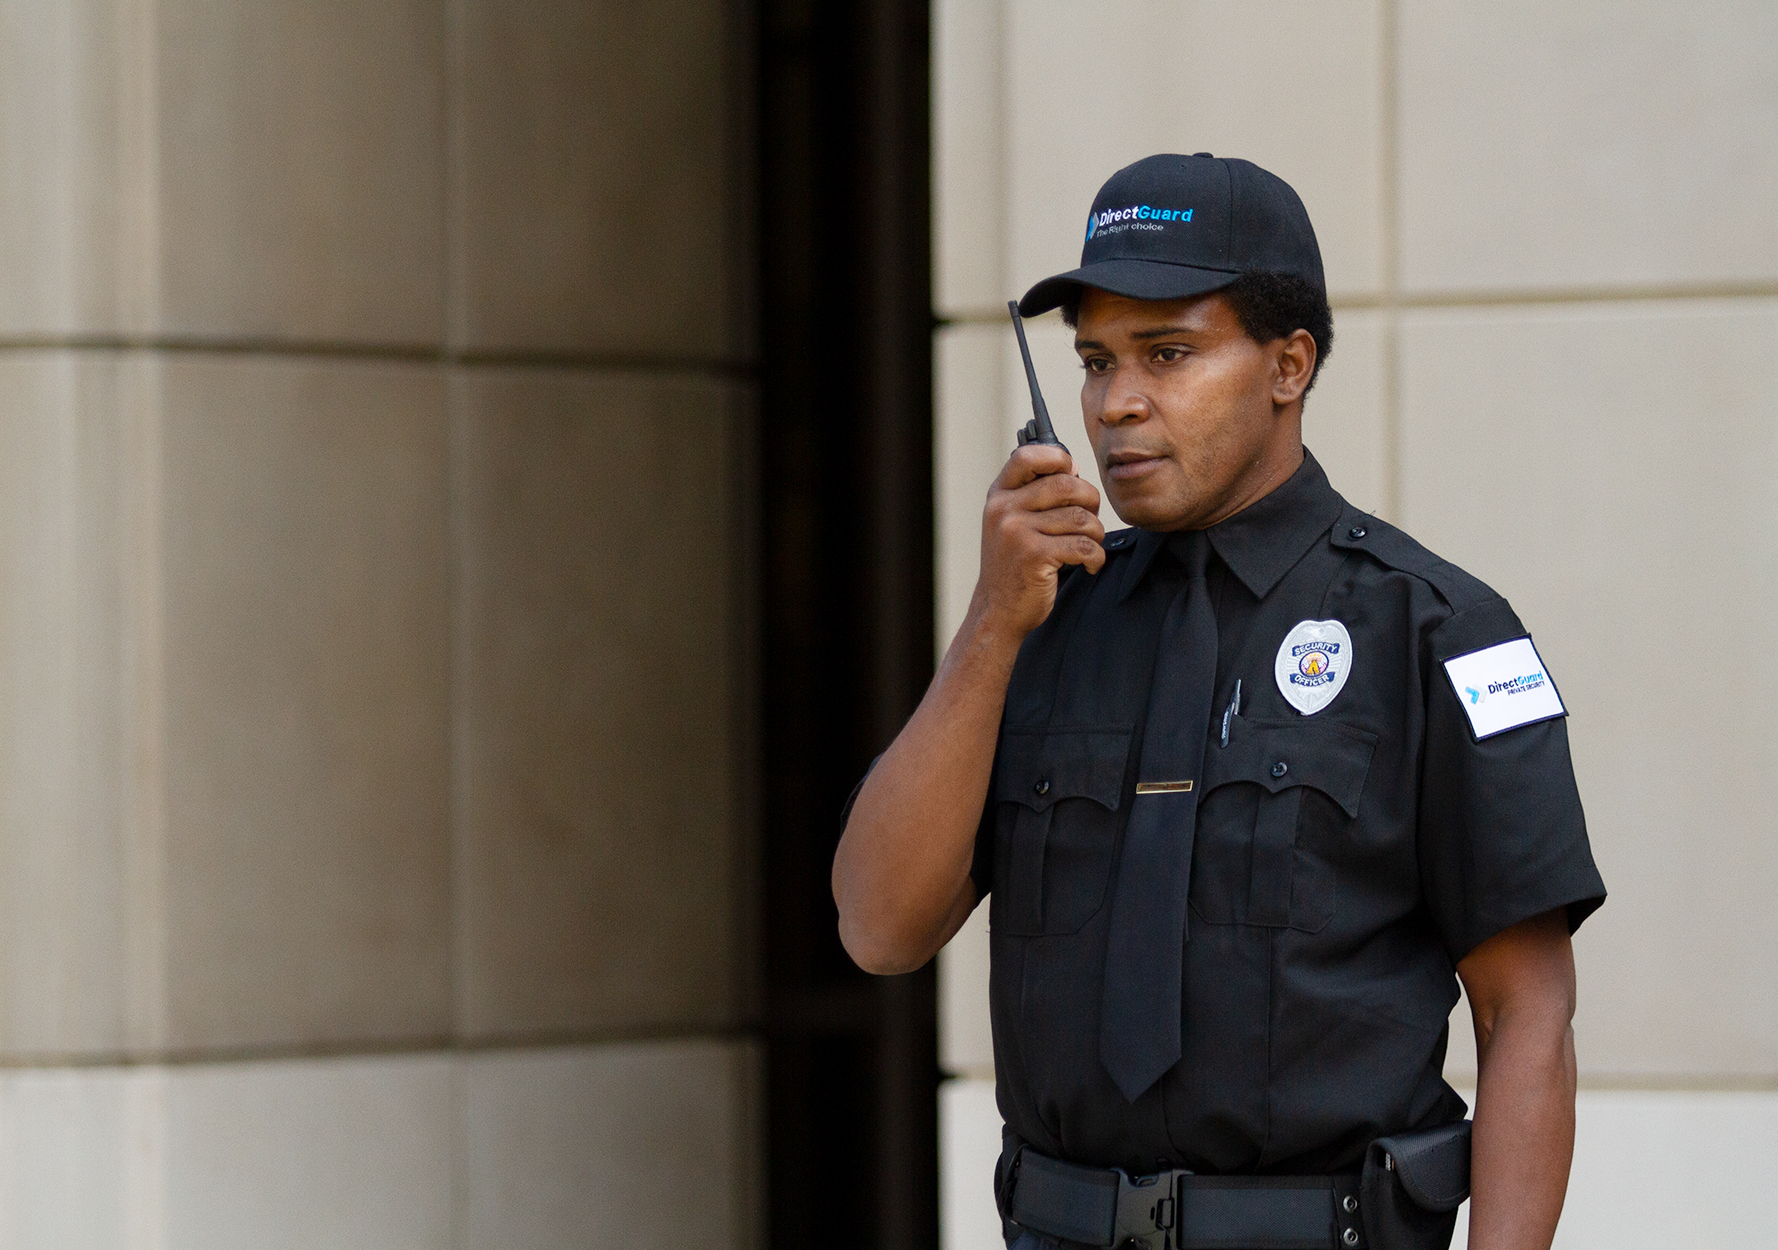 Unarmed Security Services in California